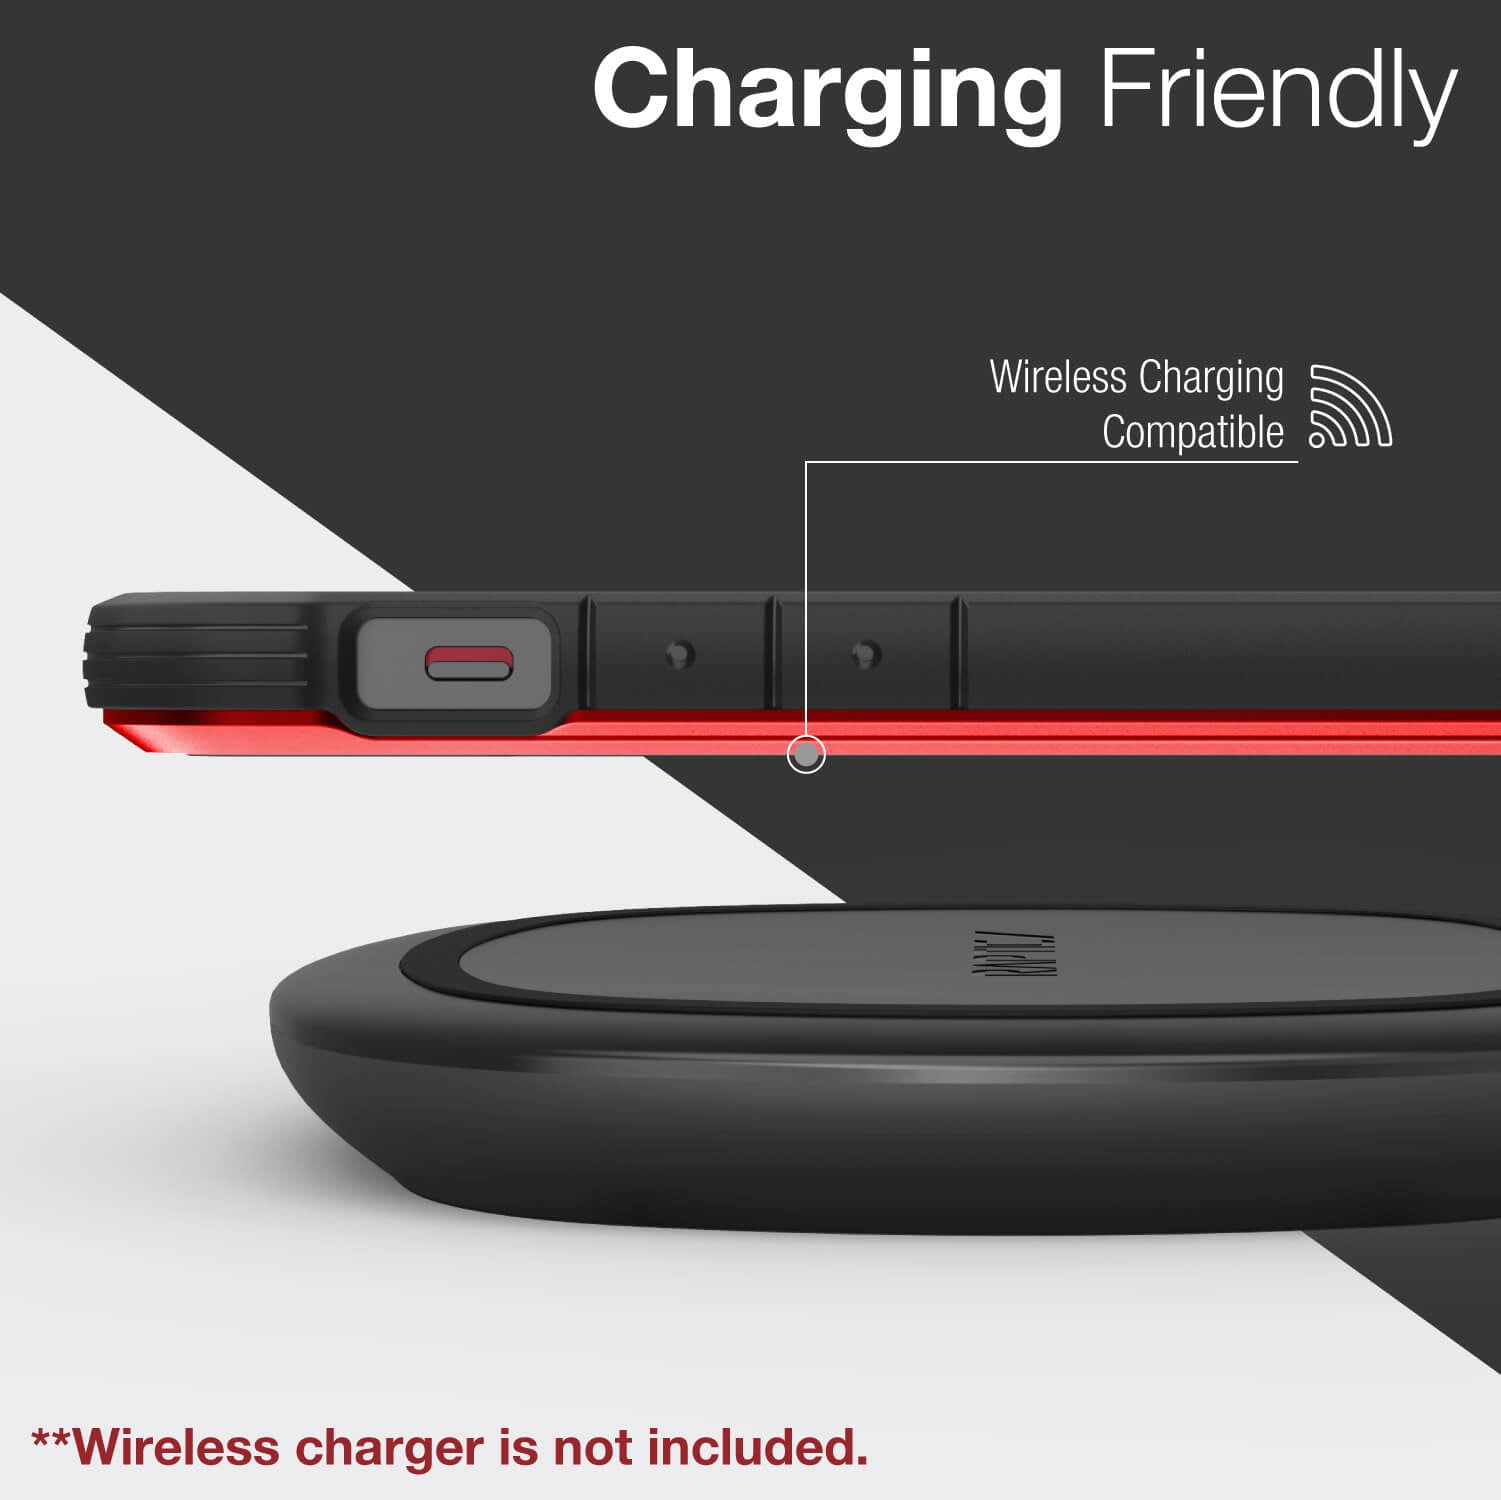 Infographic showing an iPhone 12 in a Red Raptic Shield case with wireless charging compatibility with all chargers